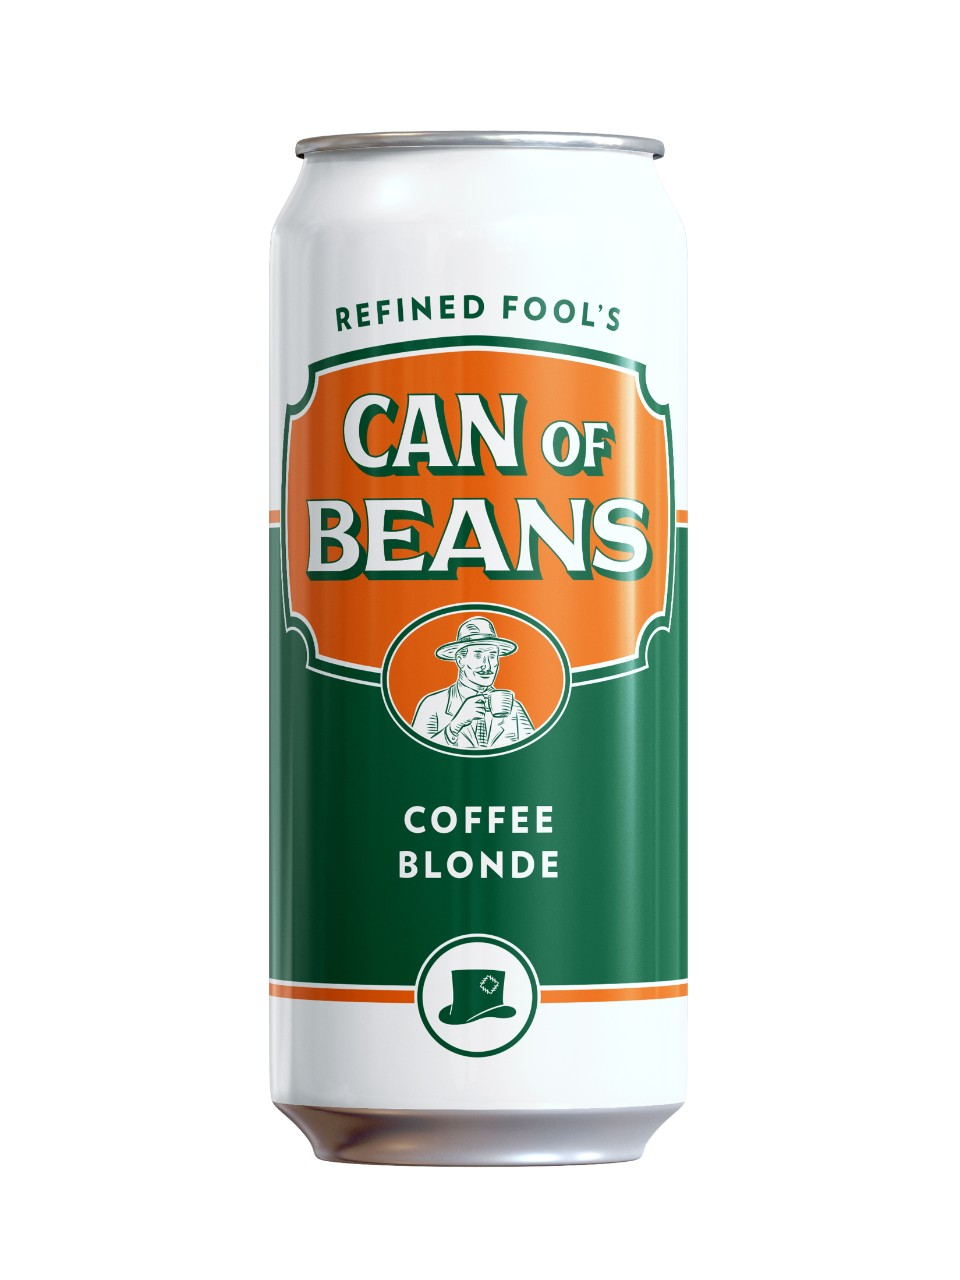 Refined Fool Can of Beans Coffee Blonde from LCBO